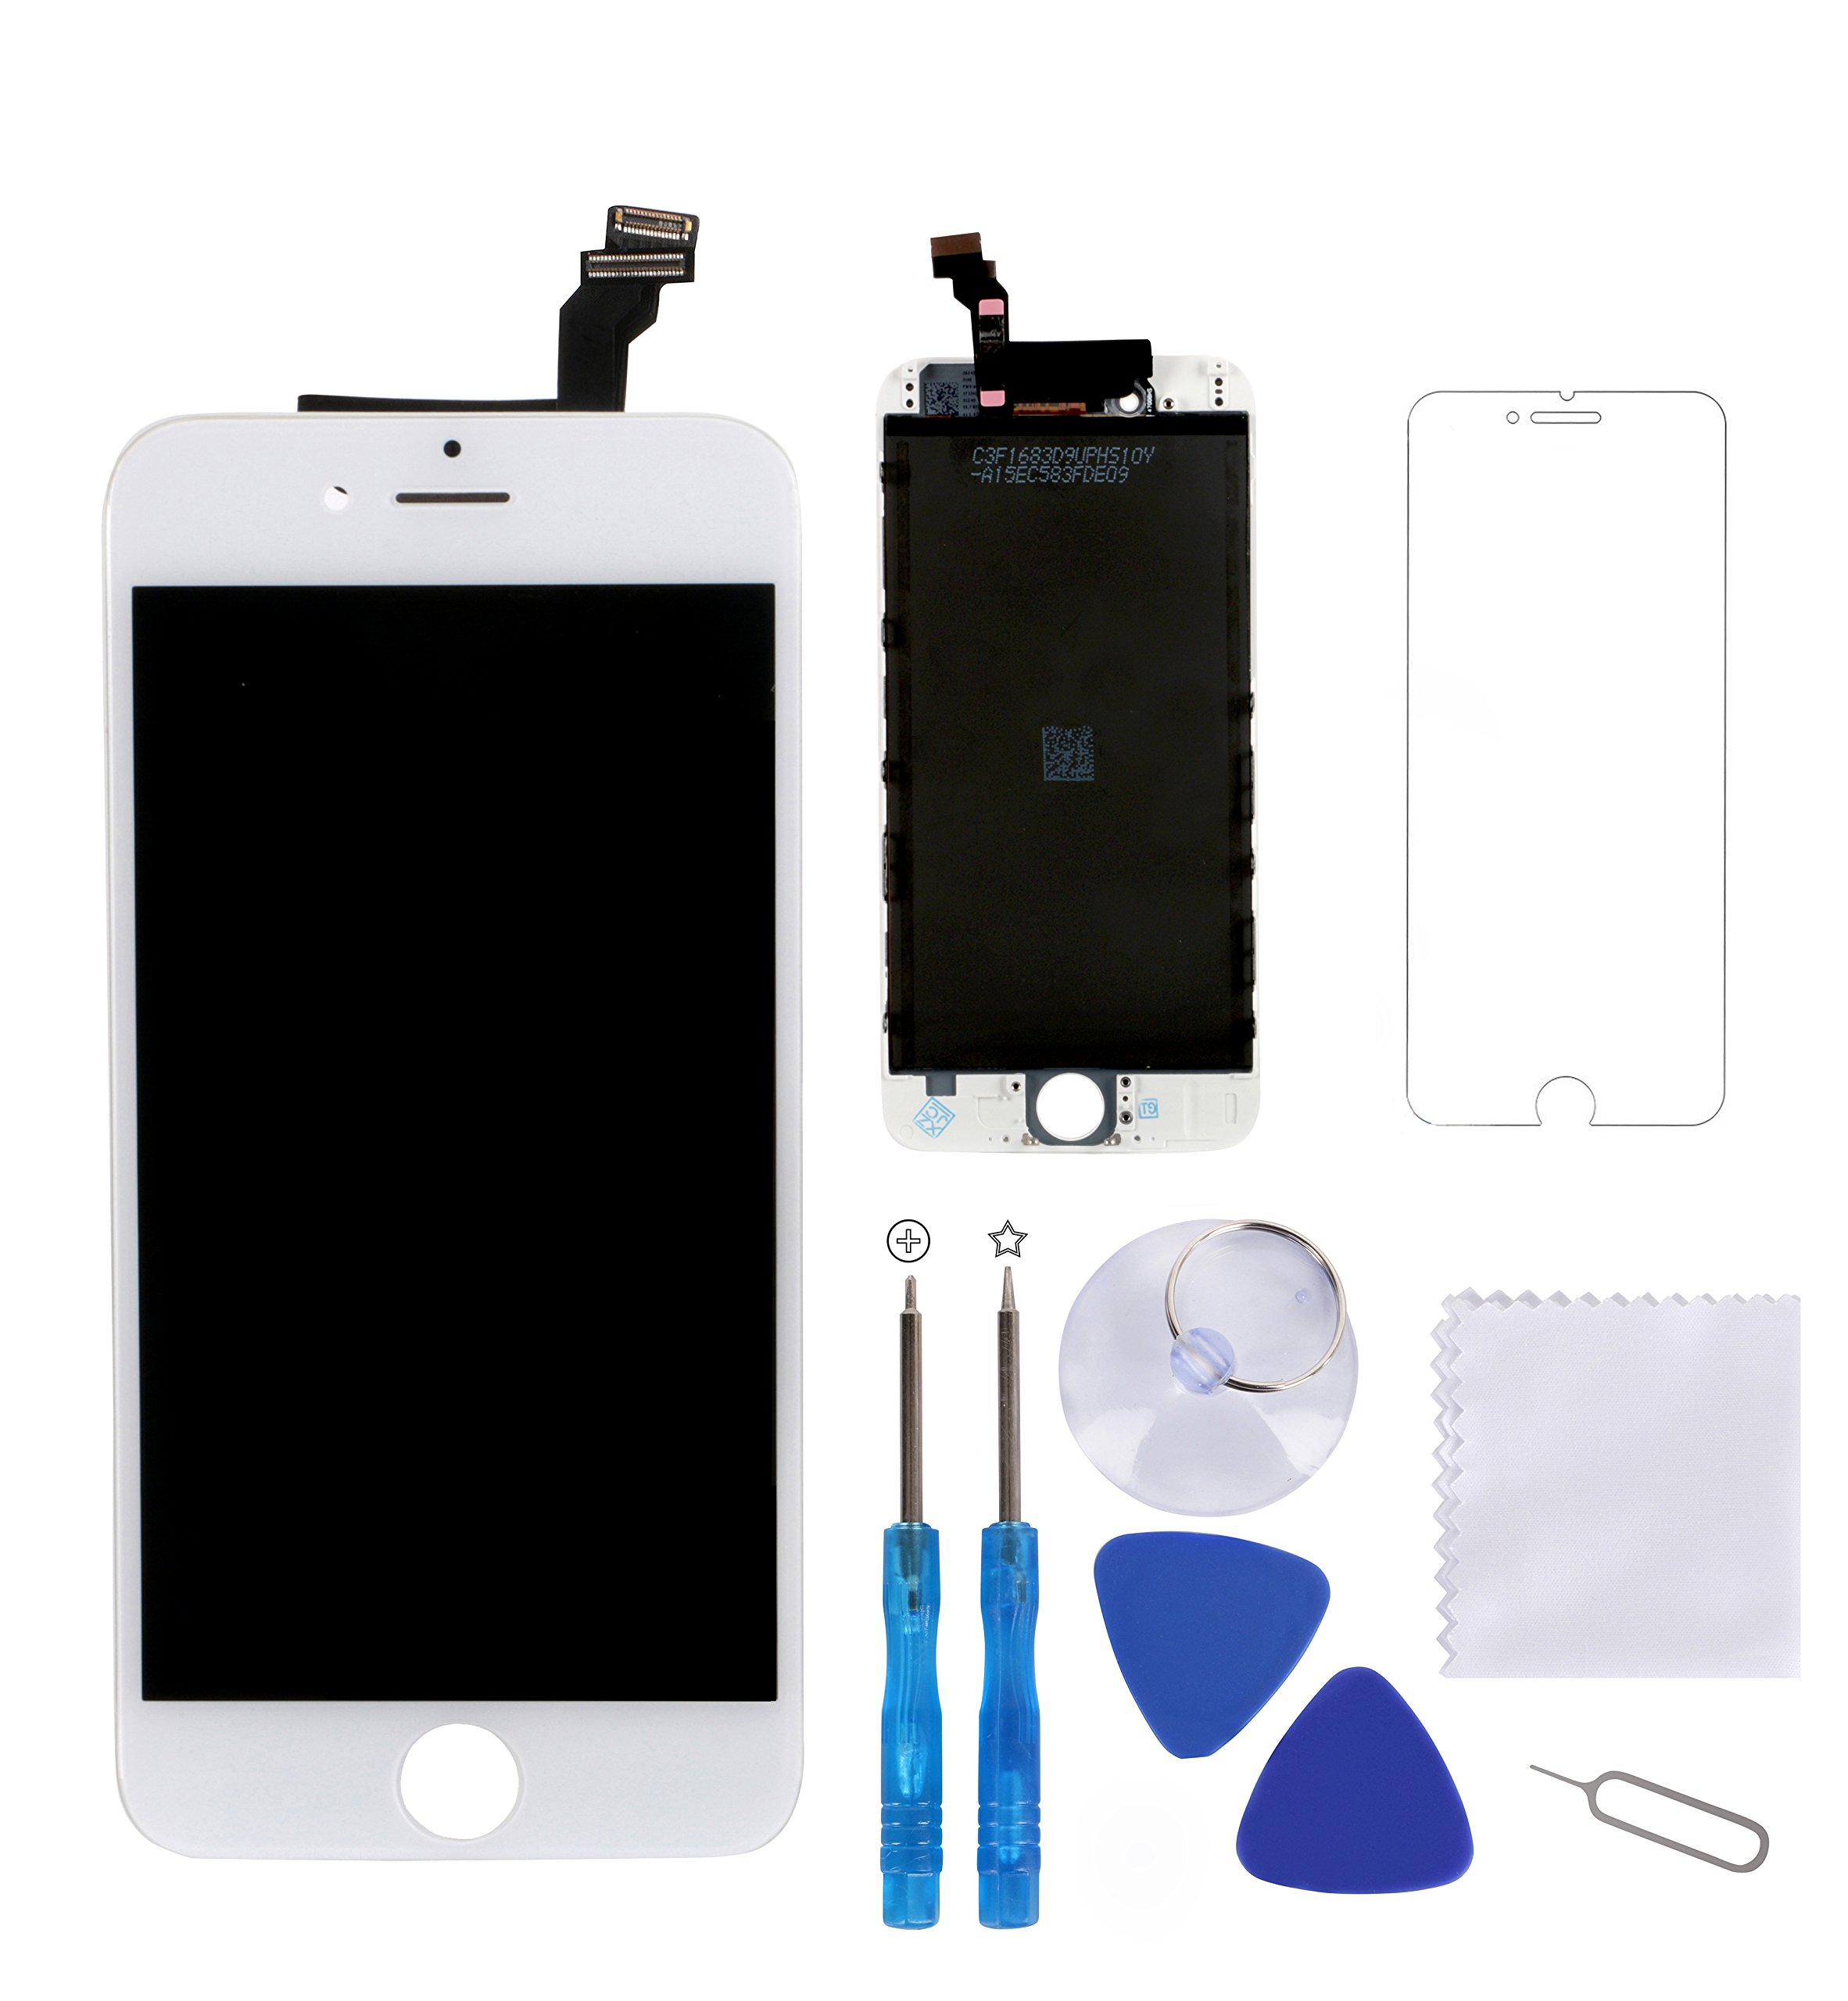 iPhone 6 Screen Replacement White, Giorefix 4.7 Inch LCD Display Touch Screen Digitizer Frame Assembly with Full Set Repair Tools Screen Protector for iPhone 6 Display White by Giorefix (Image #1)